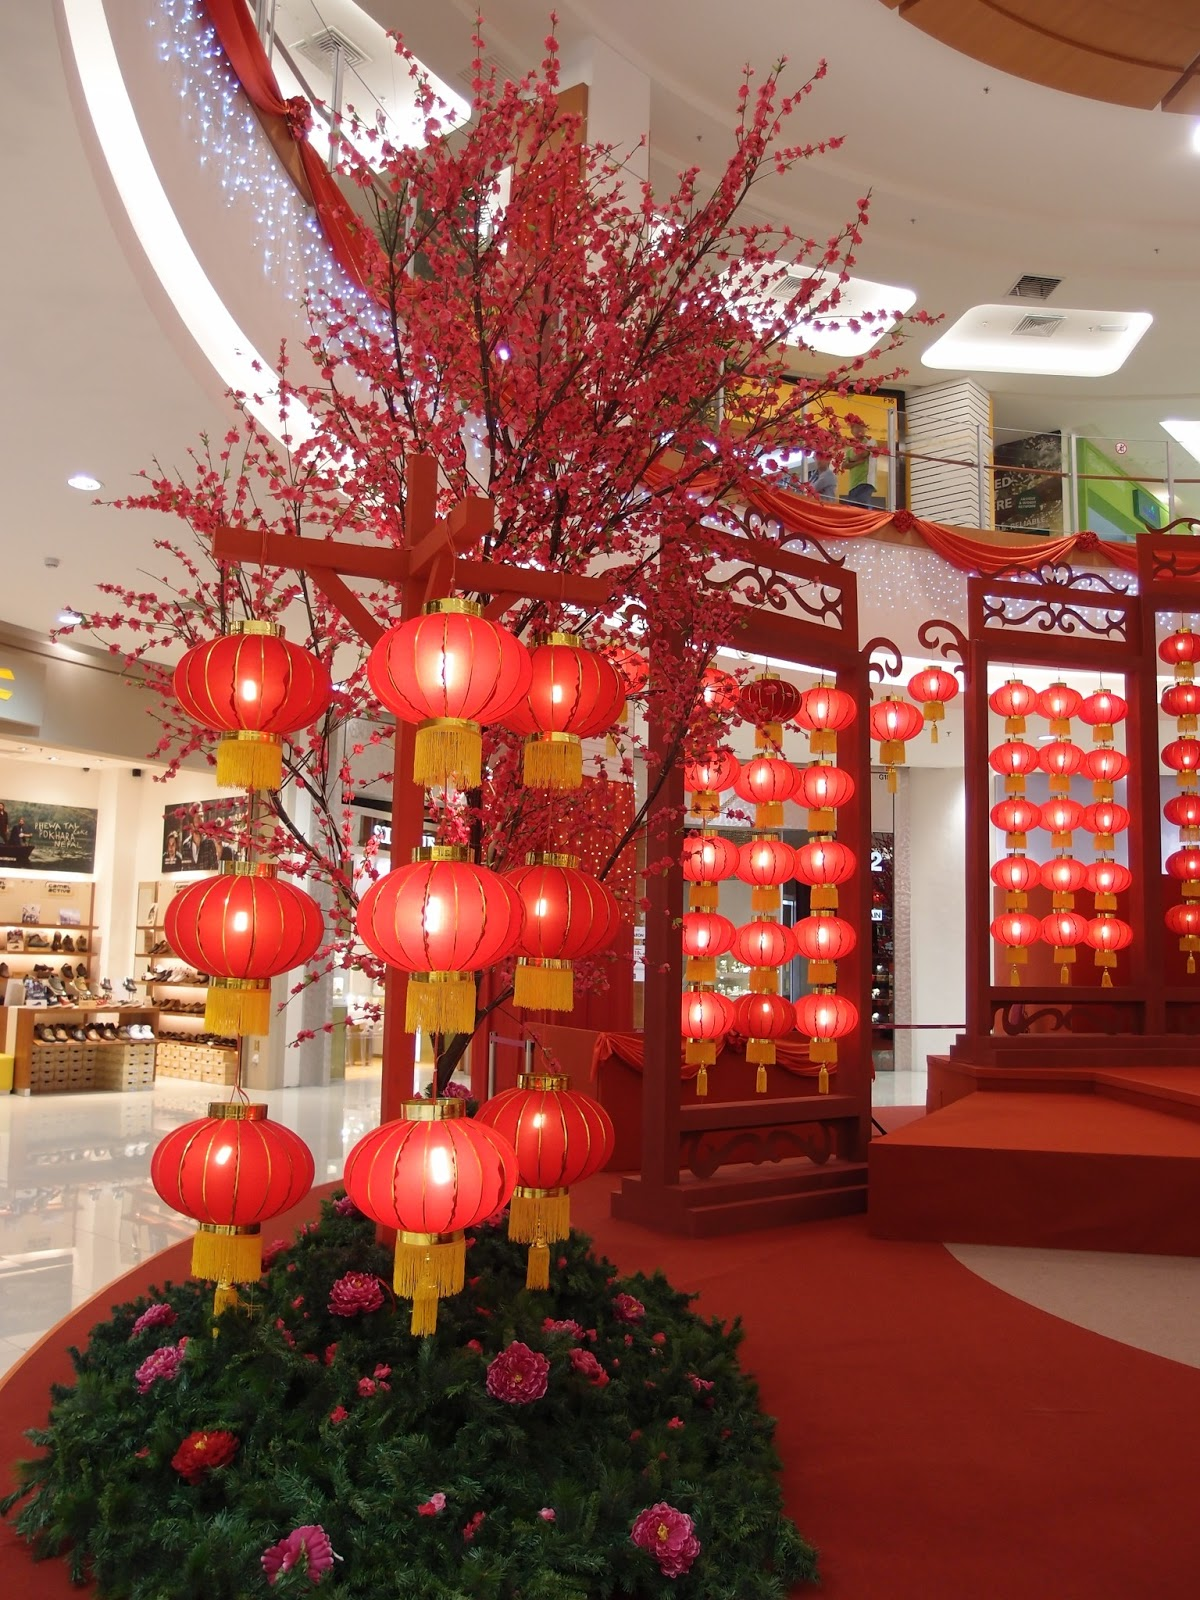 Xing fu chinese new year decorations at aeon sitiawan for Decoration new year